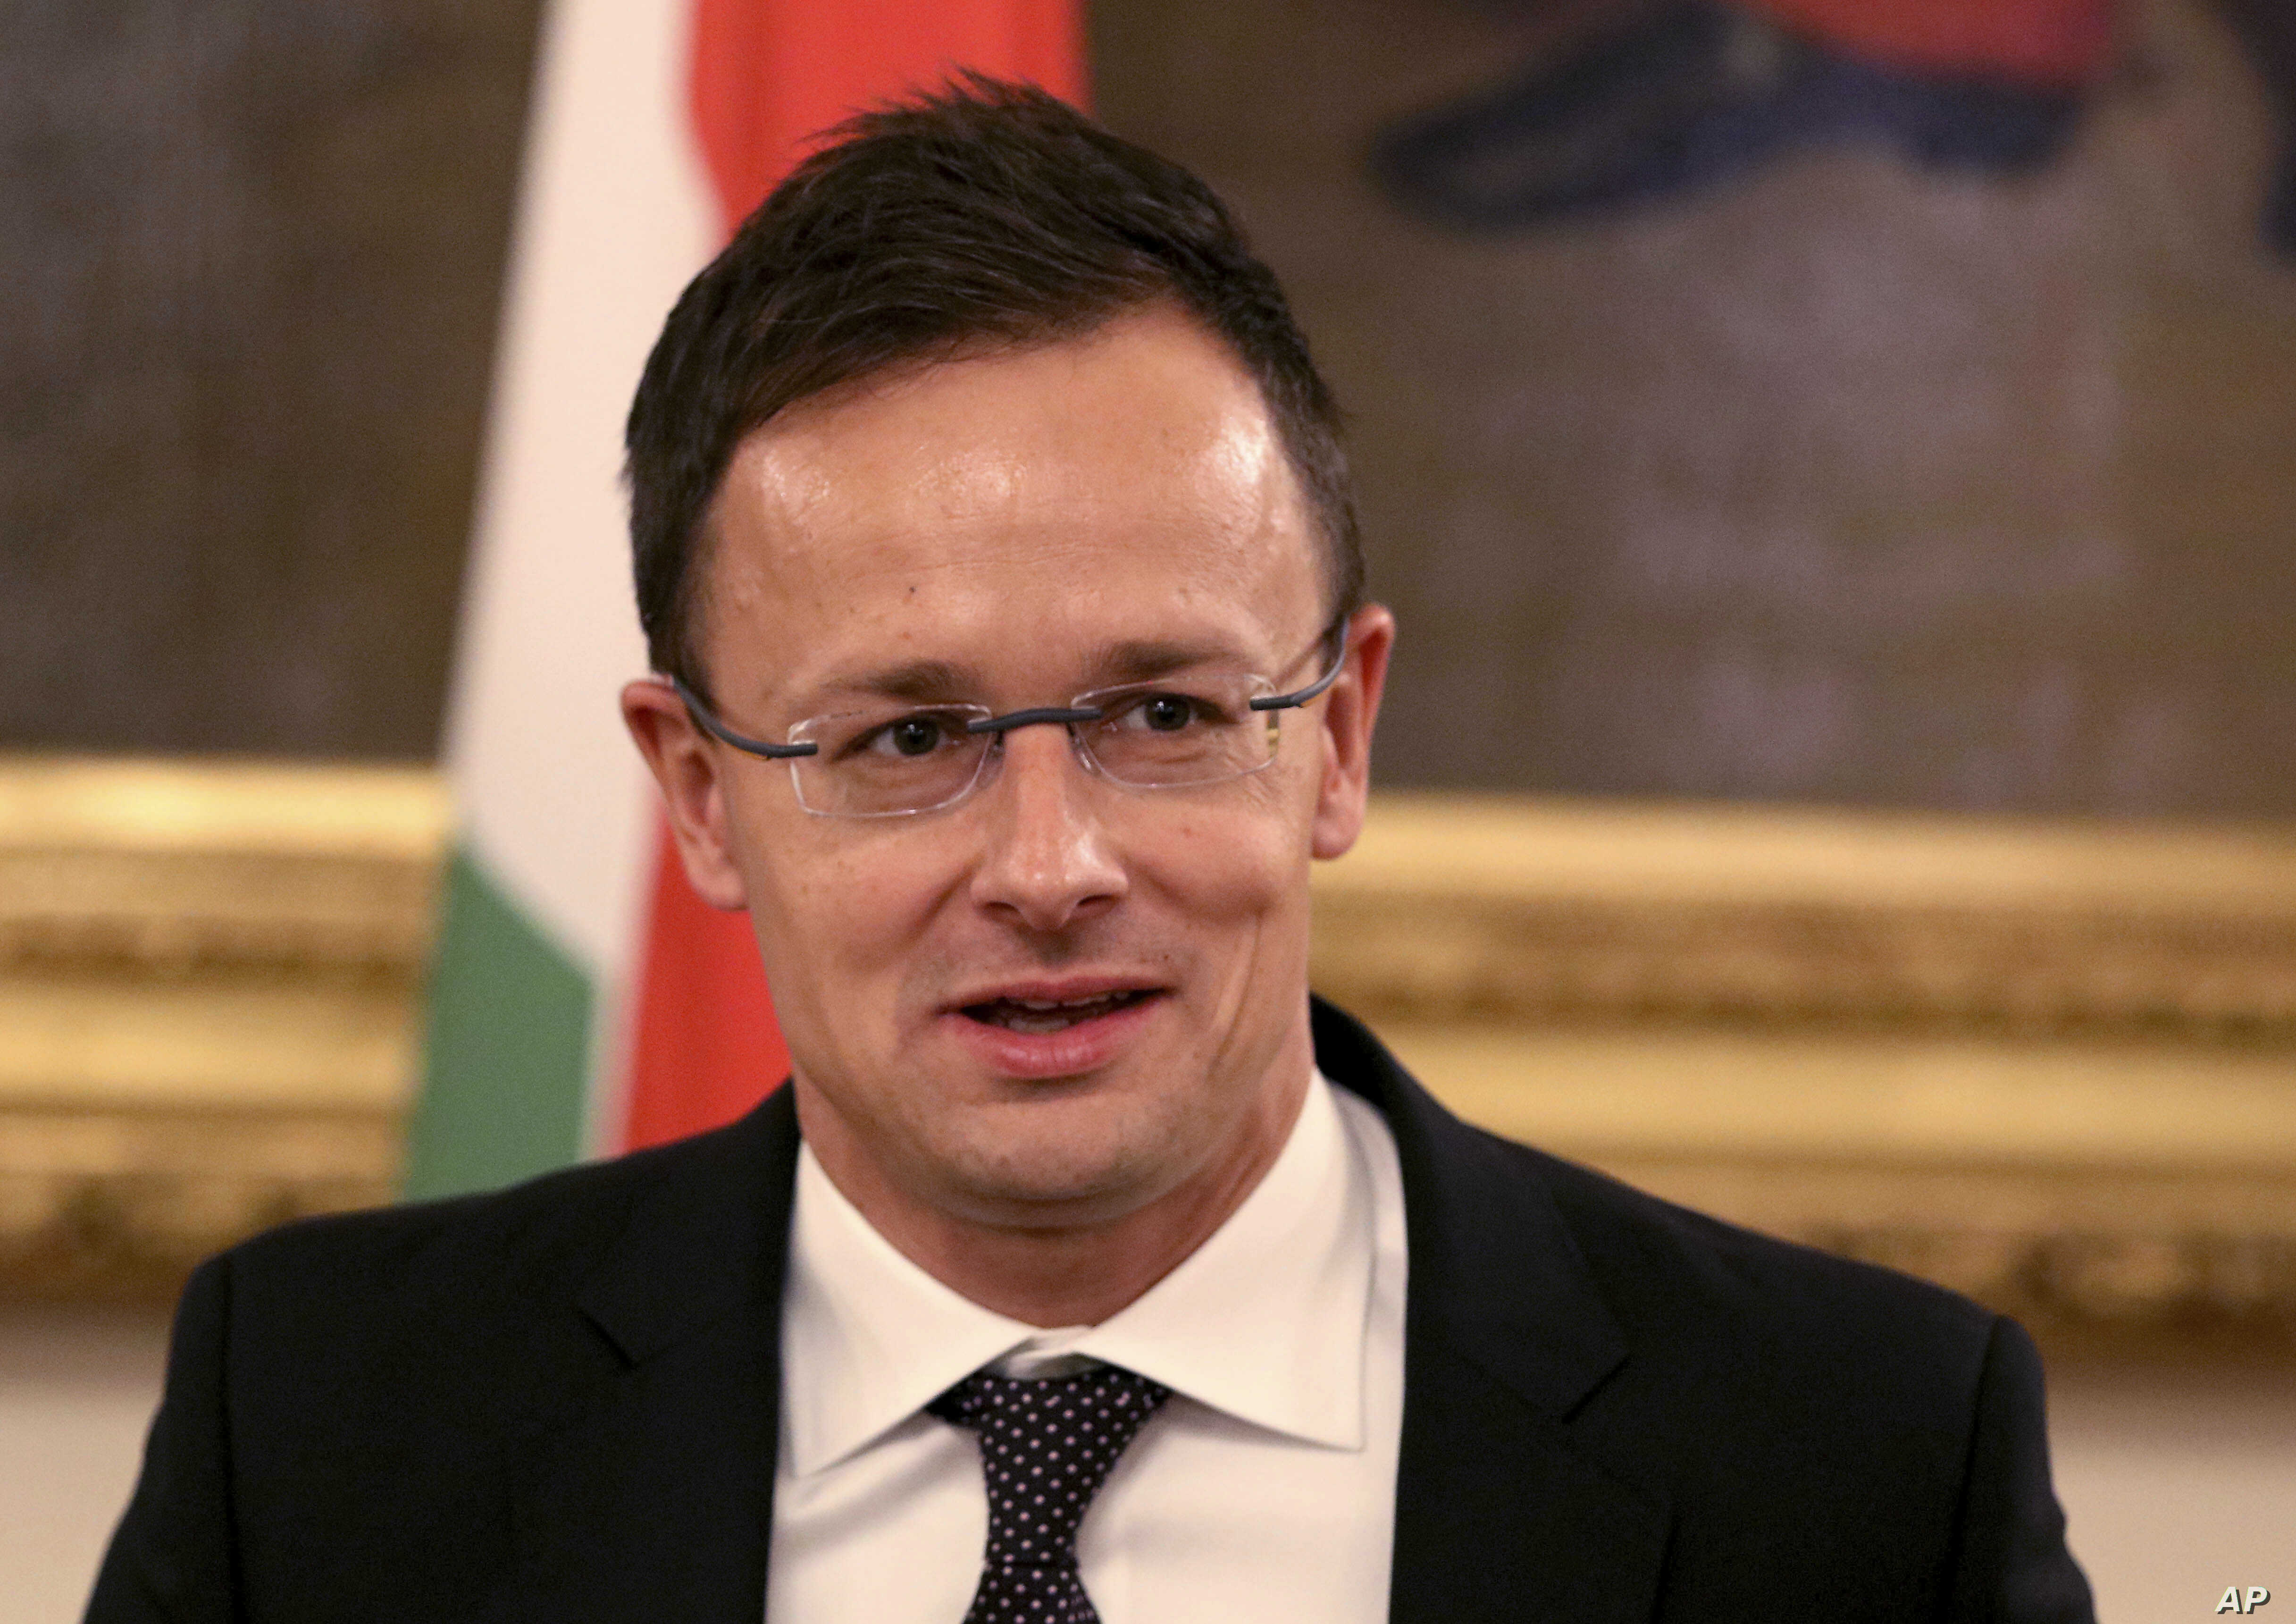 Hungary's Foreign Minister Peter Szijjarto speaks during a press conference in Vienna, Austria, Nov. 7, 2018.